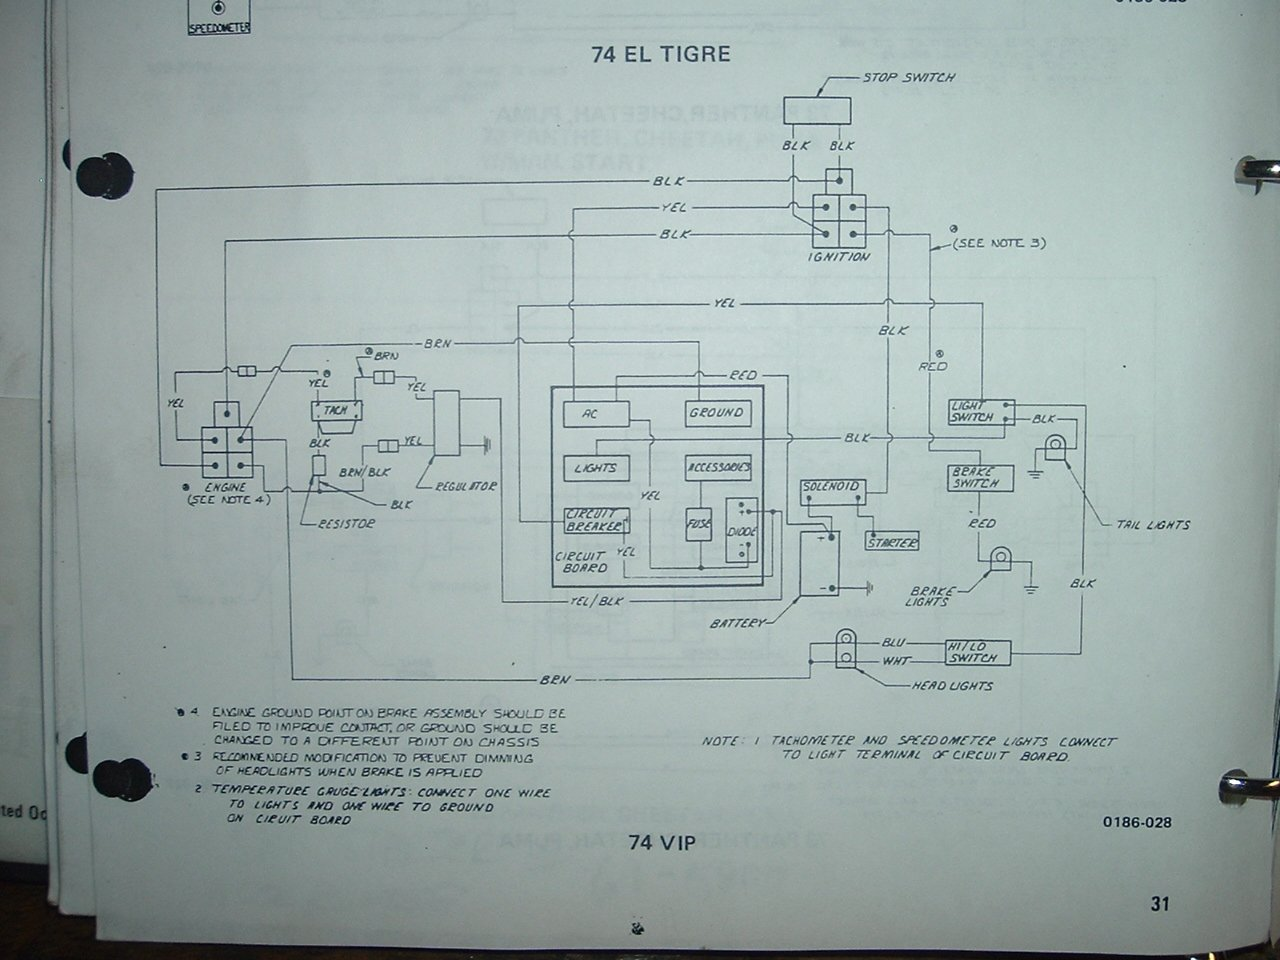 1991 arctic cat jag wiring diagram auto electrical wiring diagram u2022 rh 6weeks co uk